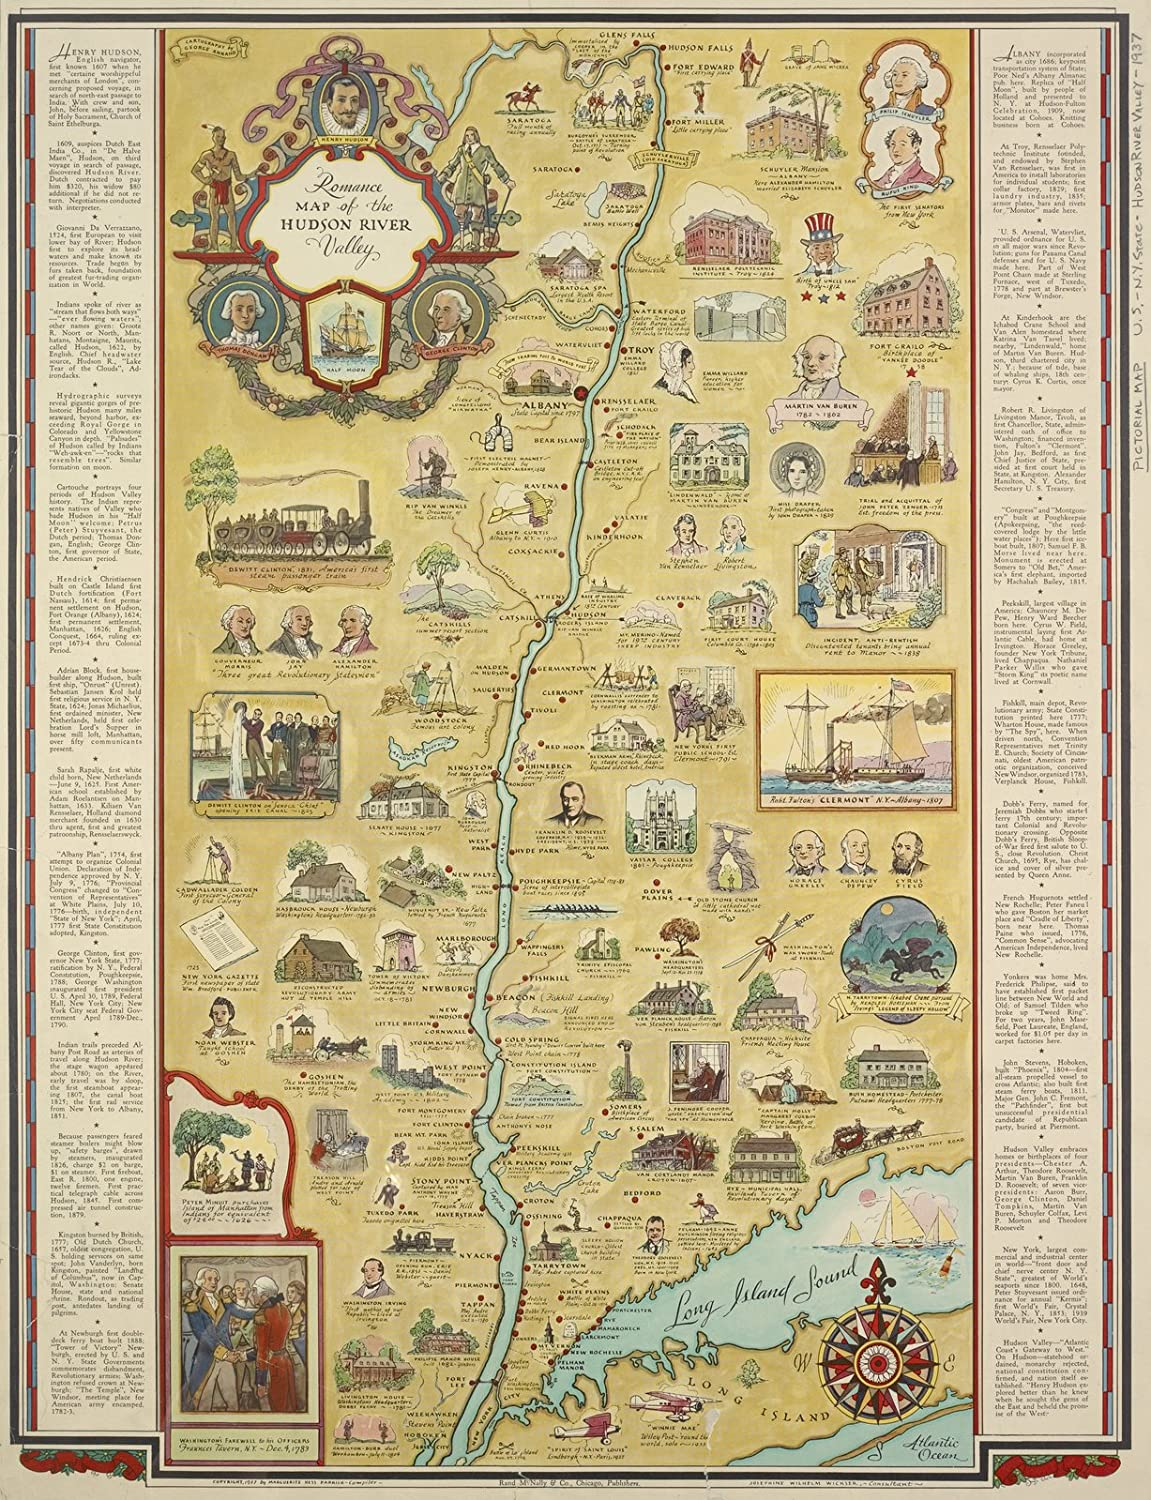 Amazon.com: Map Poster - Romance map of the Hudson River ... on map of missaukee county, map of aquinas, map of iron river, map of st. peter, map of caro, map of boyne falls, map of dilworth, map of olivet, map of brethren, map of pinconning, map of lenawee county, map of excelsior springs, map of ohio wesleyan, map of pelican rapids, map of alex, map of siena heights university, map of vassar, map of bates county, map of eastpointe, map of norwood young america,